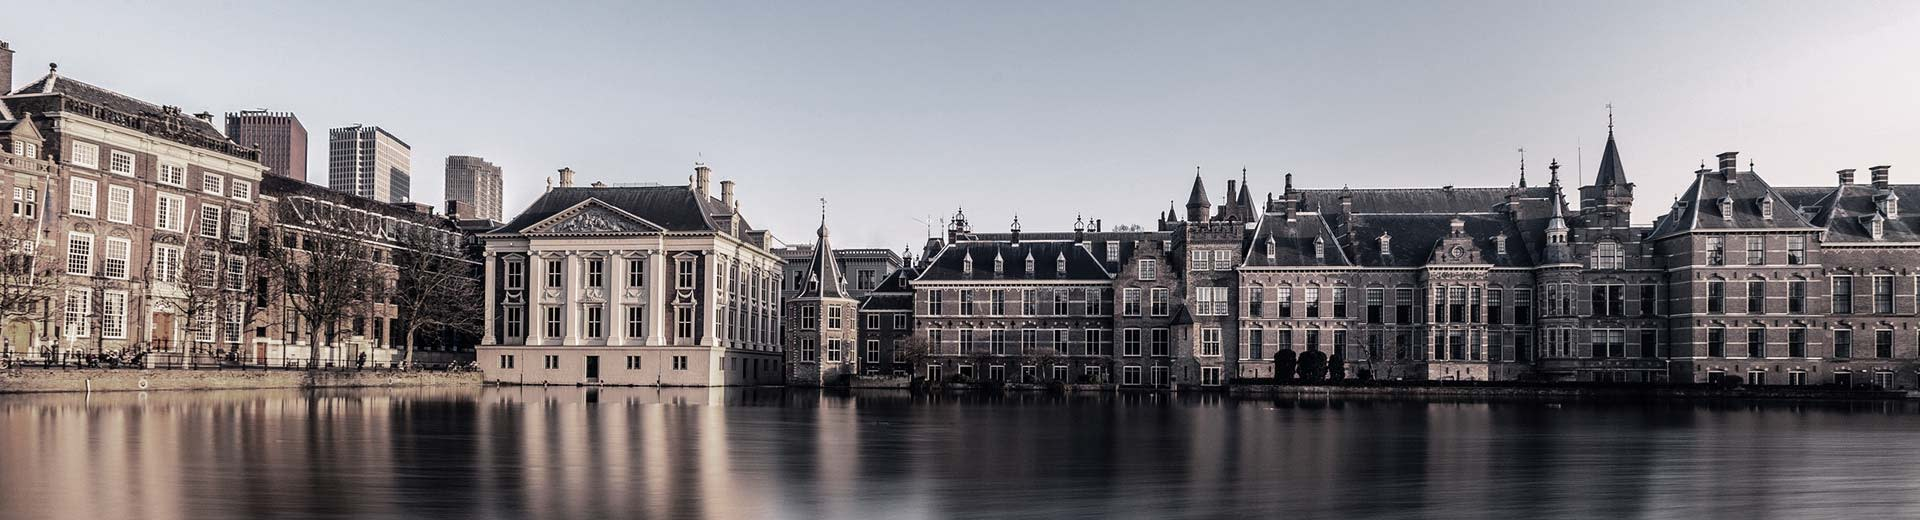 Behind a body of water in The Hague are an assortment of beautiful, historic buildings under a clear and bright sky